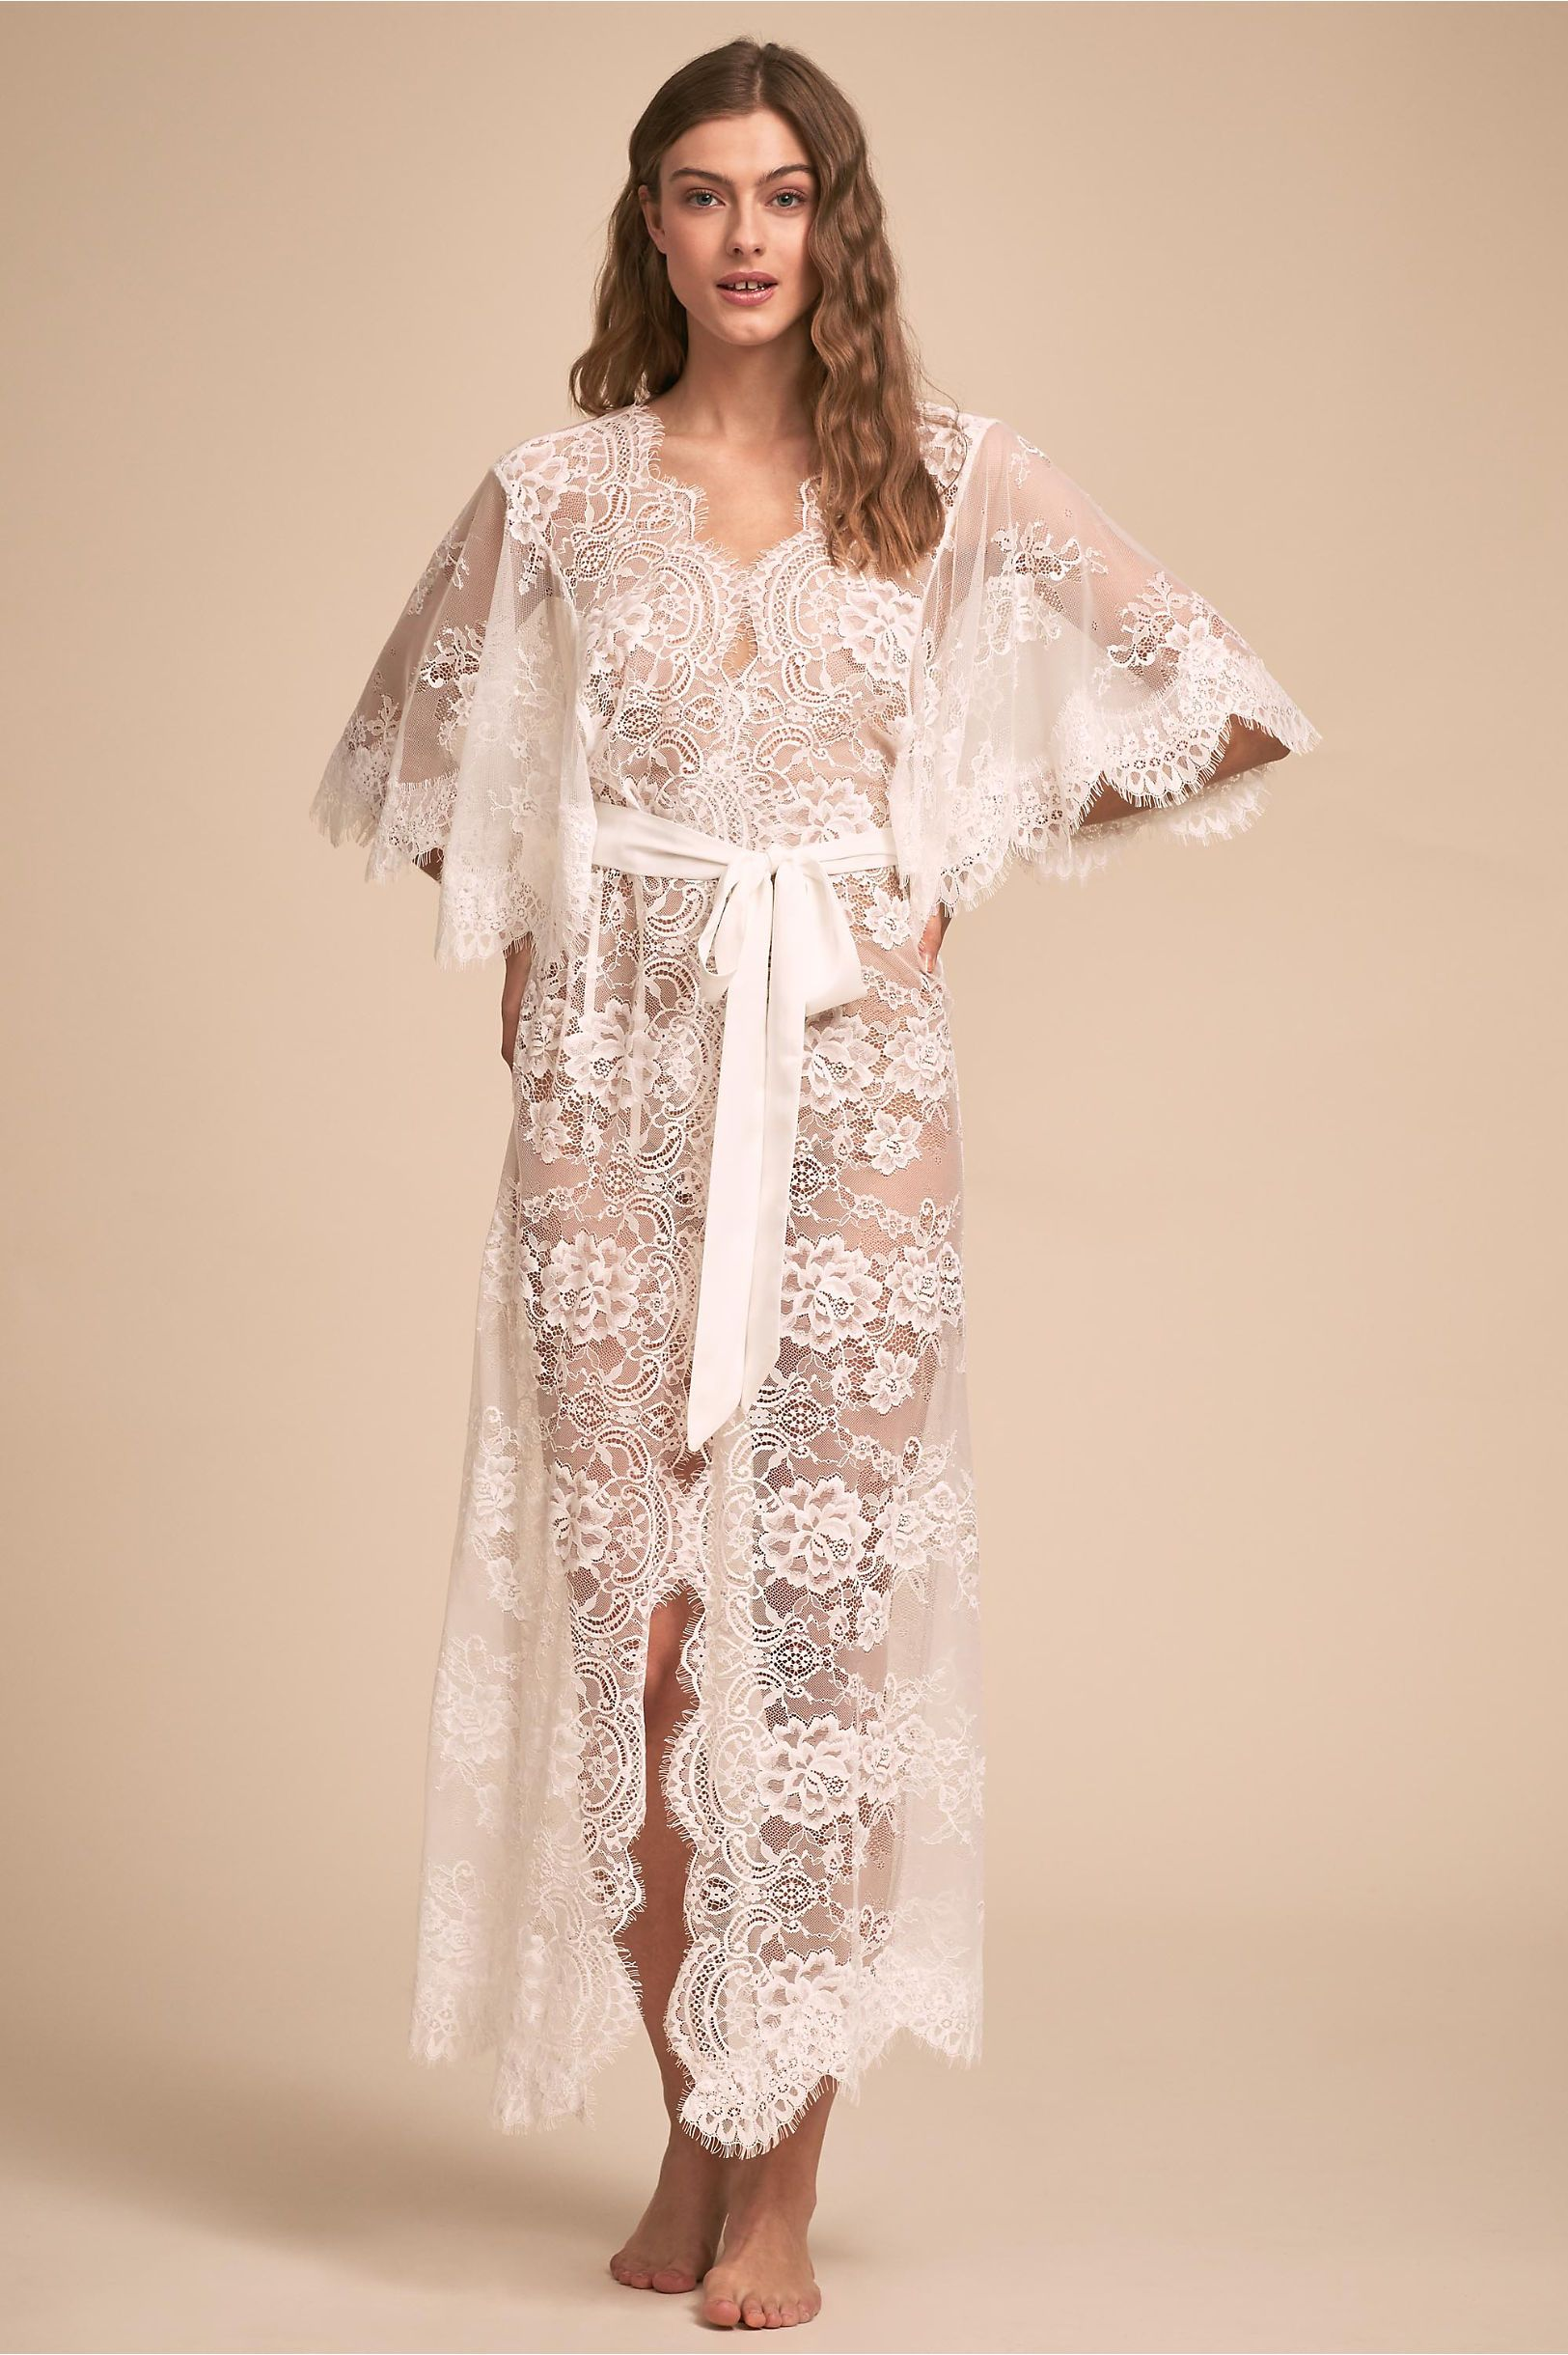 3432934eb BHLDN s Homebodii Kassiah Lace Robe in Ivory